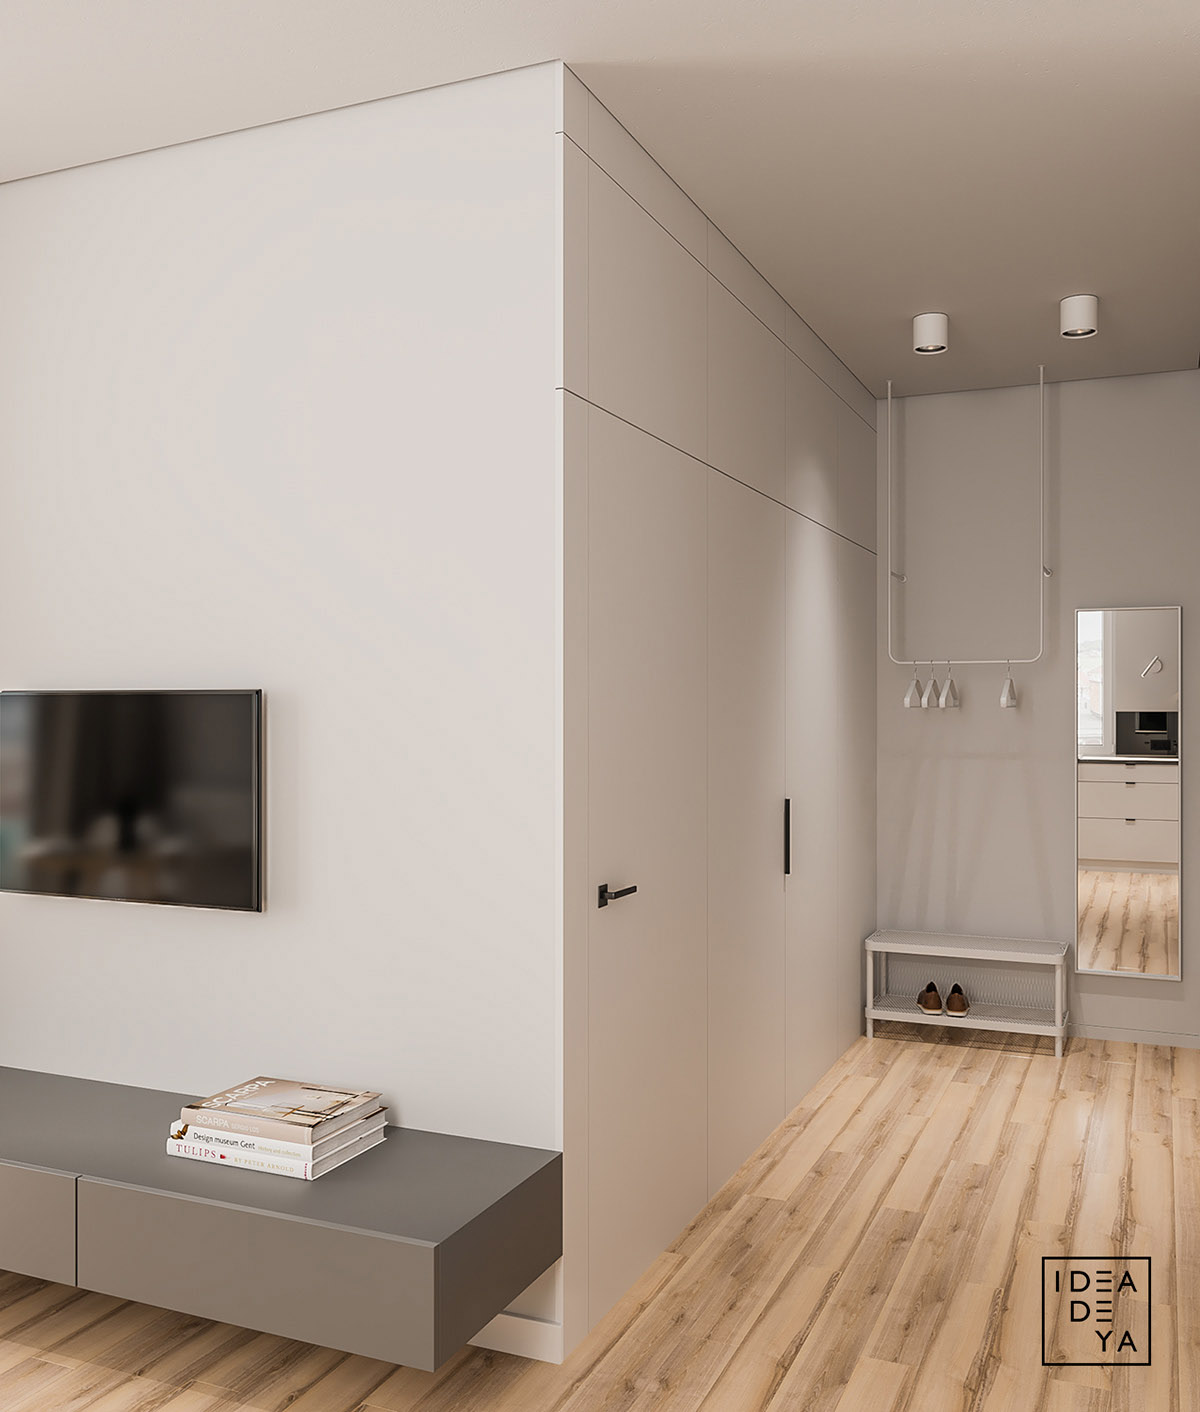 Modern And Youthful: 4 Small Apartments With Fierce Style images 23